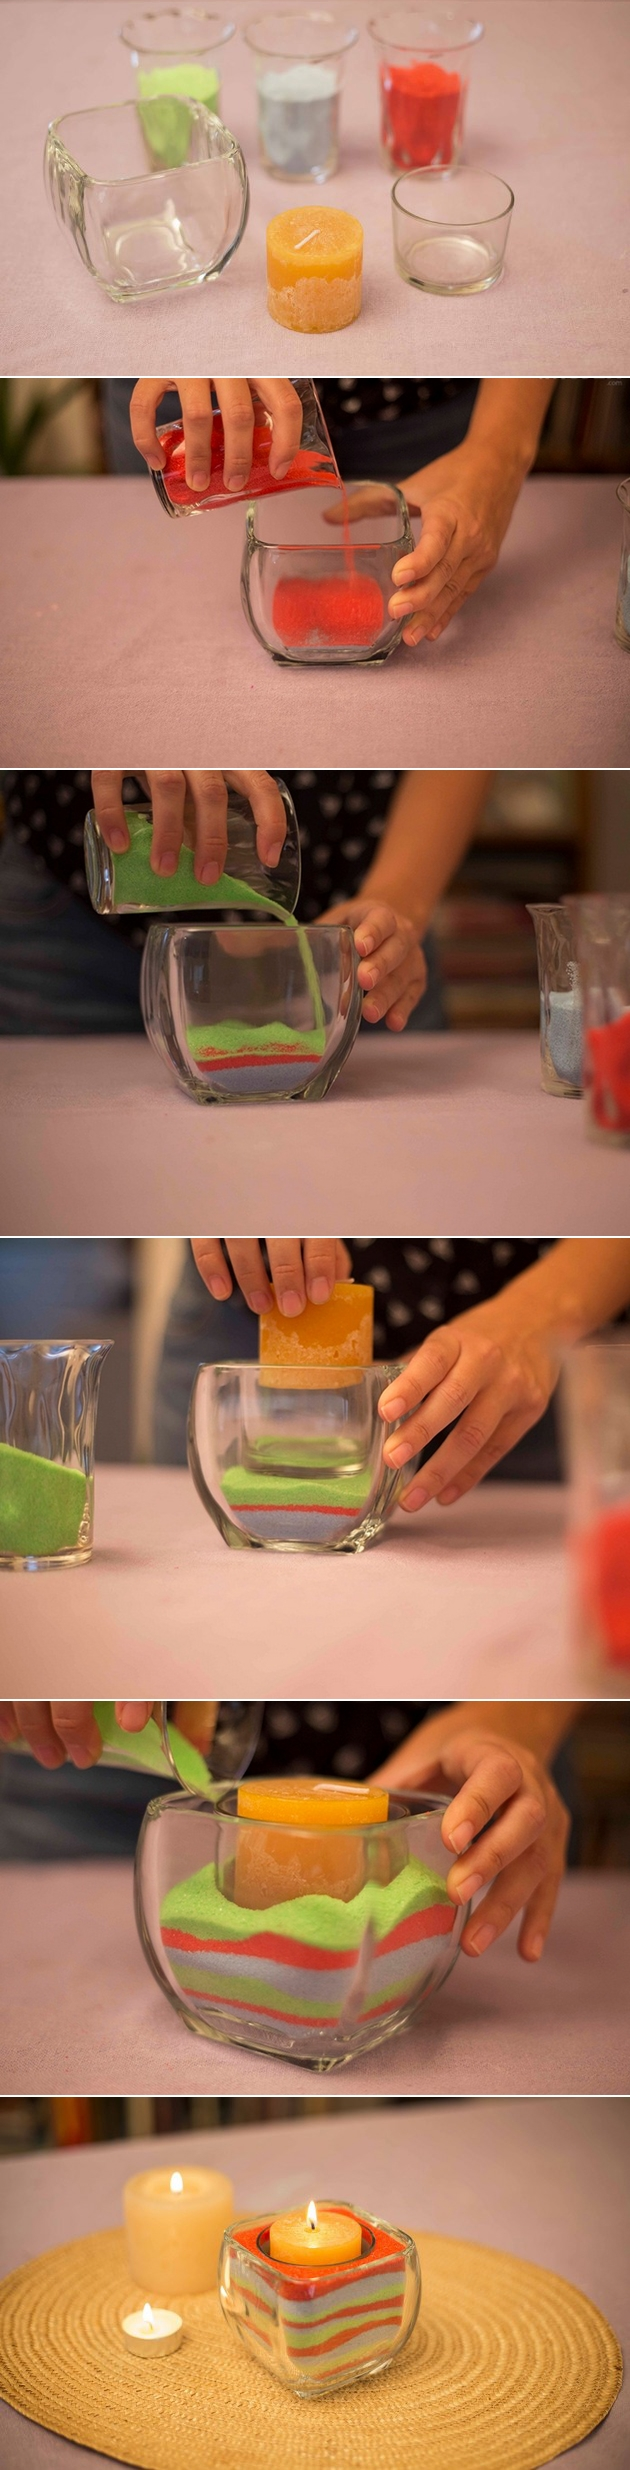 decorating-glass-candle-holders-colorful-sand